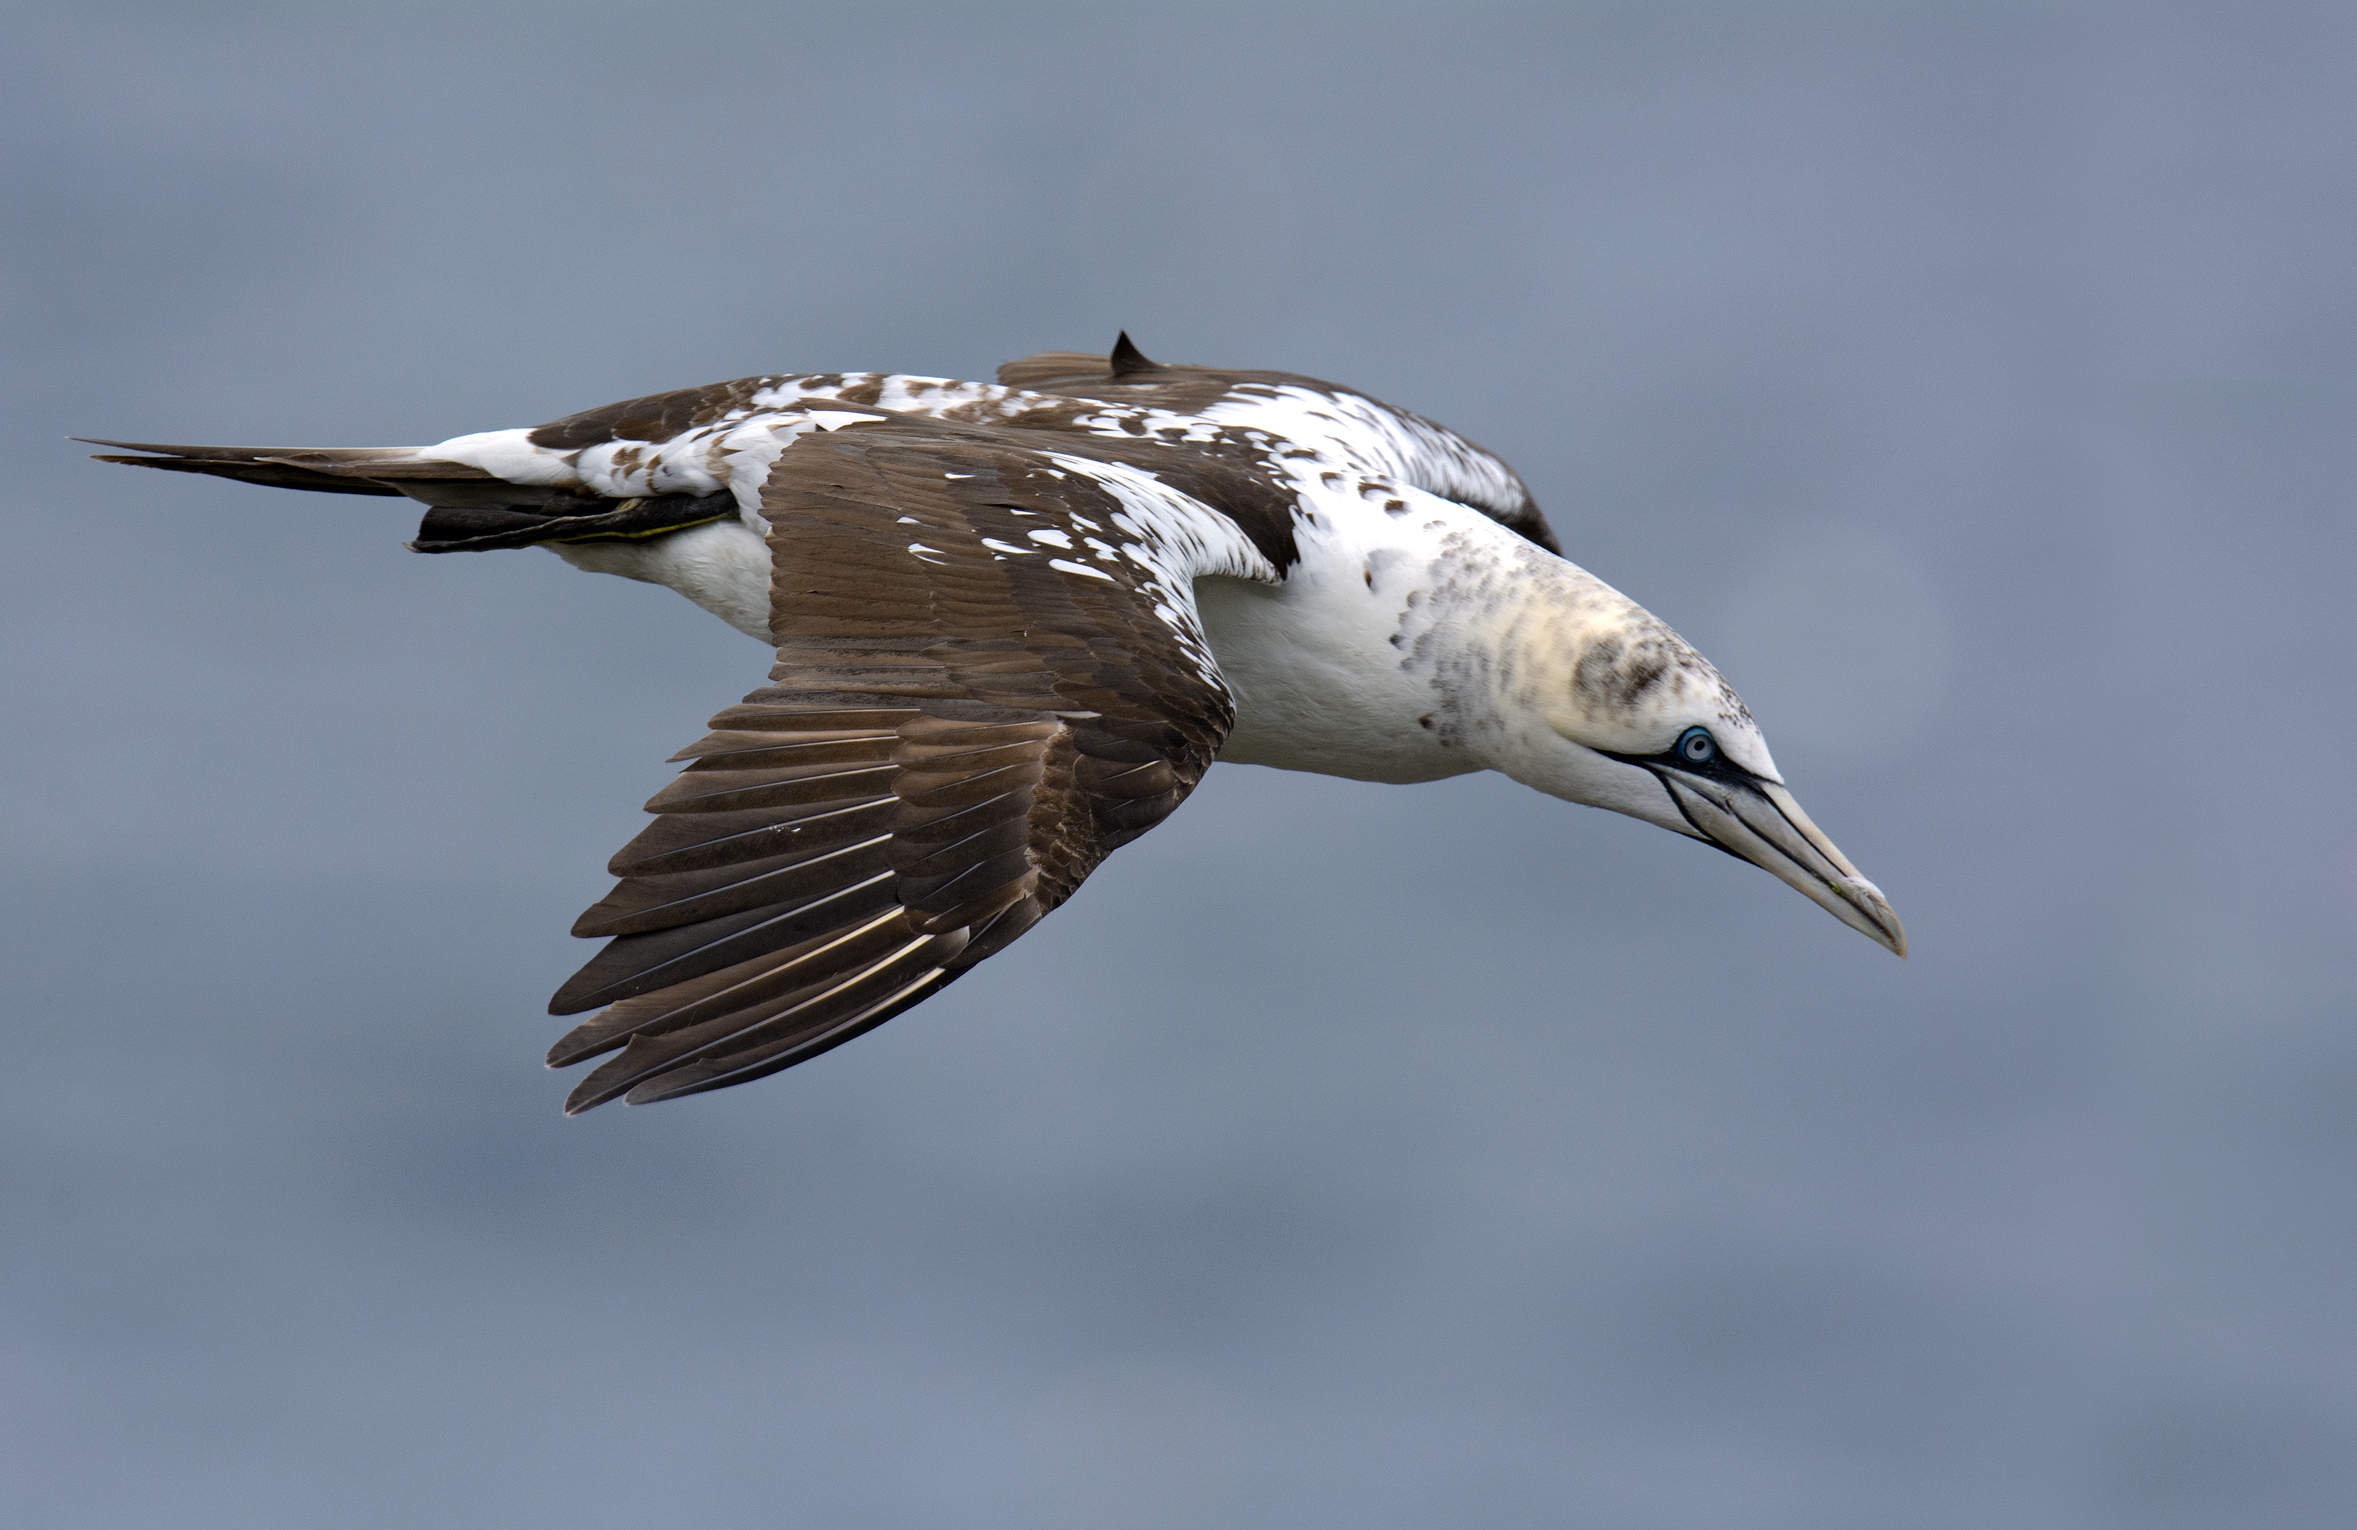 Here is a young gannet still displaying many dark spots throughout. This is probably a second year bird.